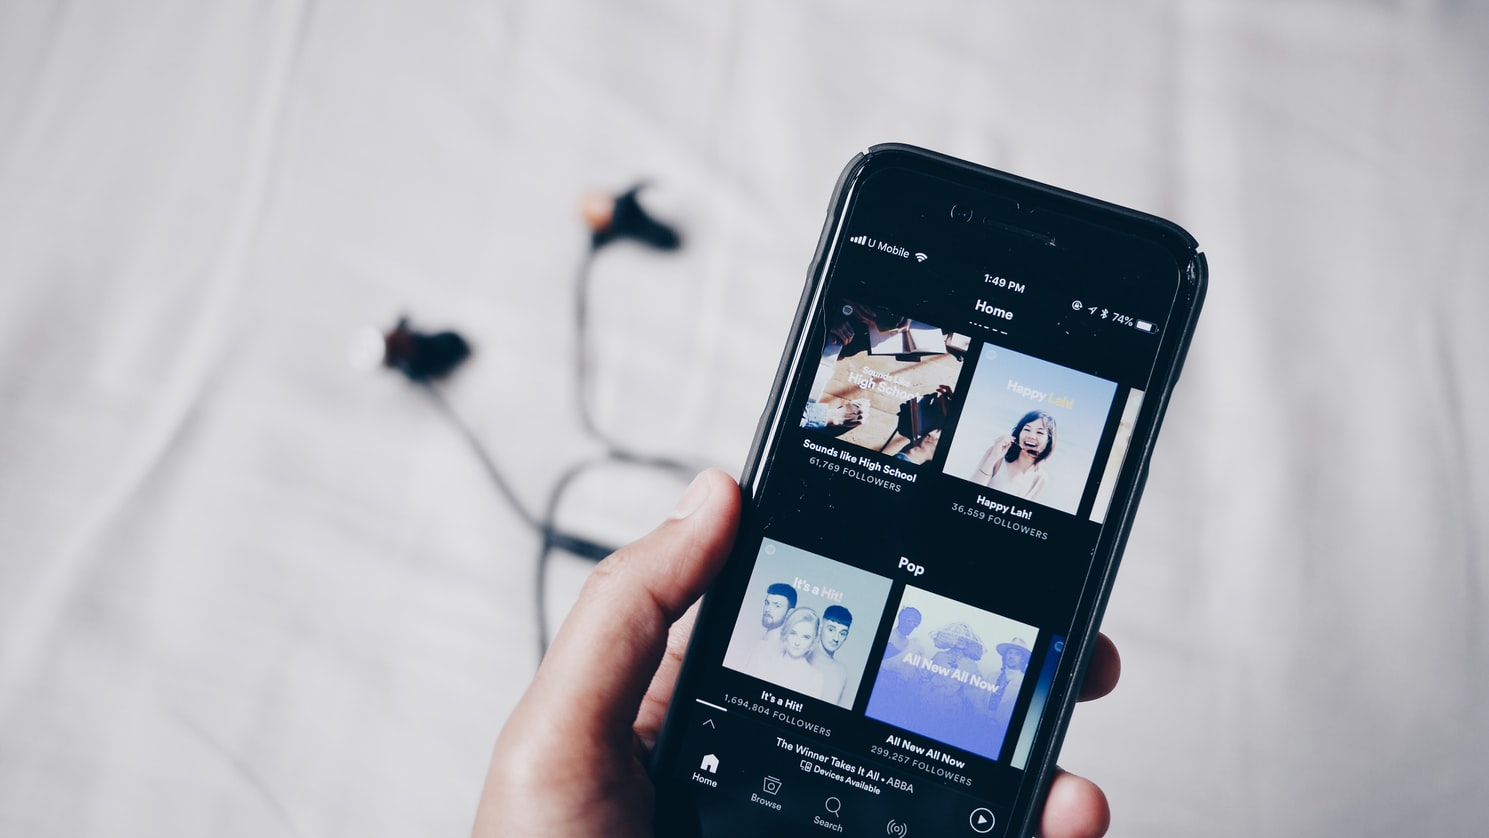 Photo of a Spotify on a smartphone